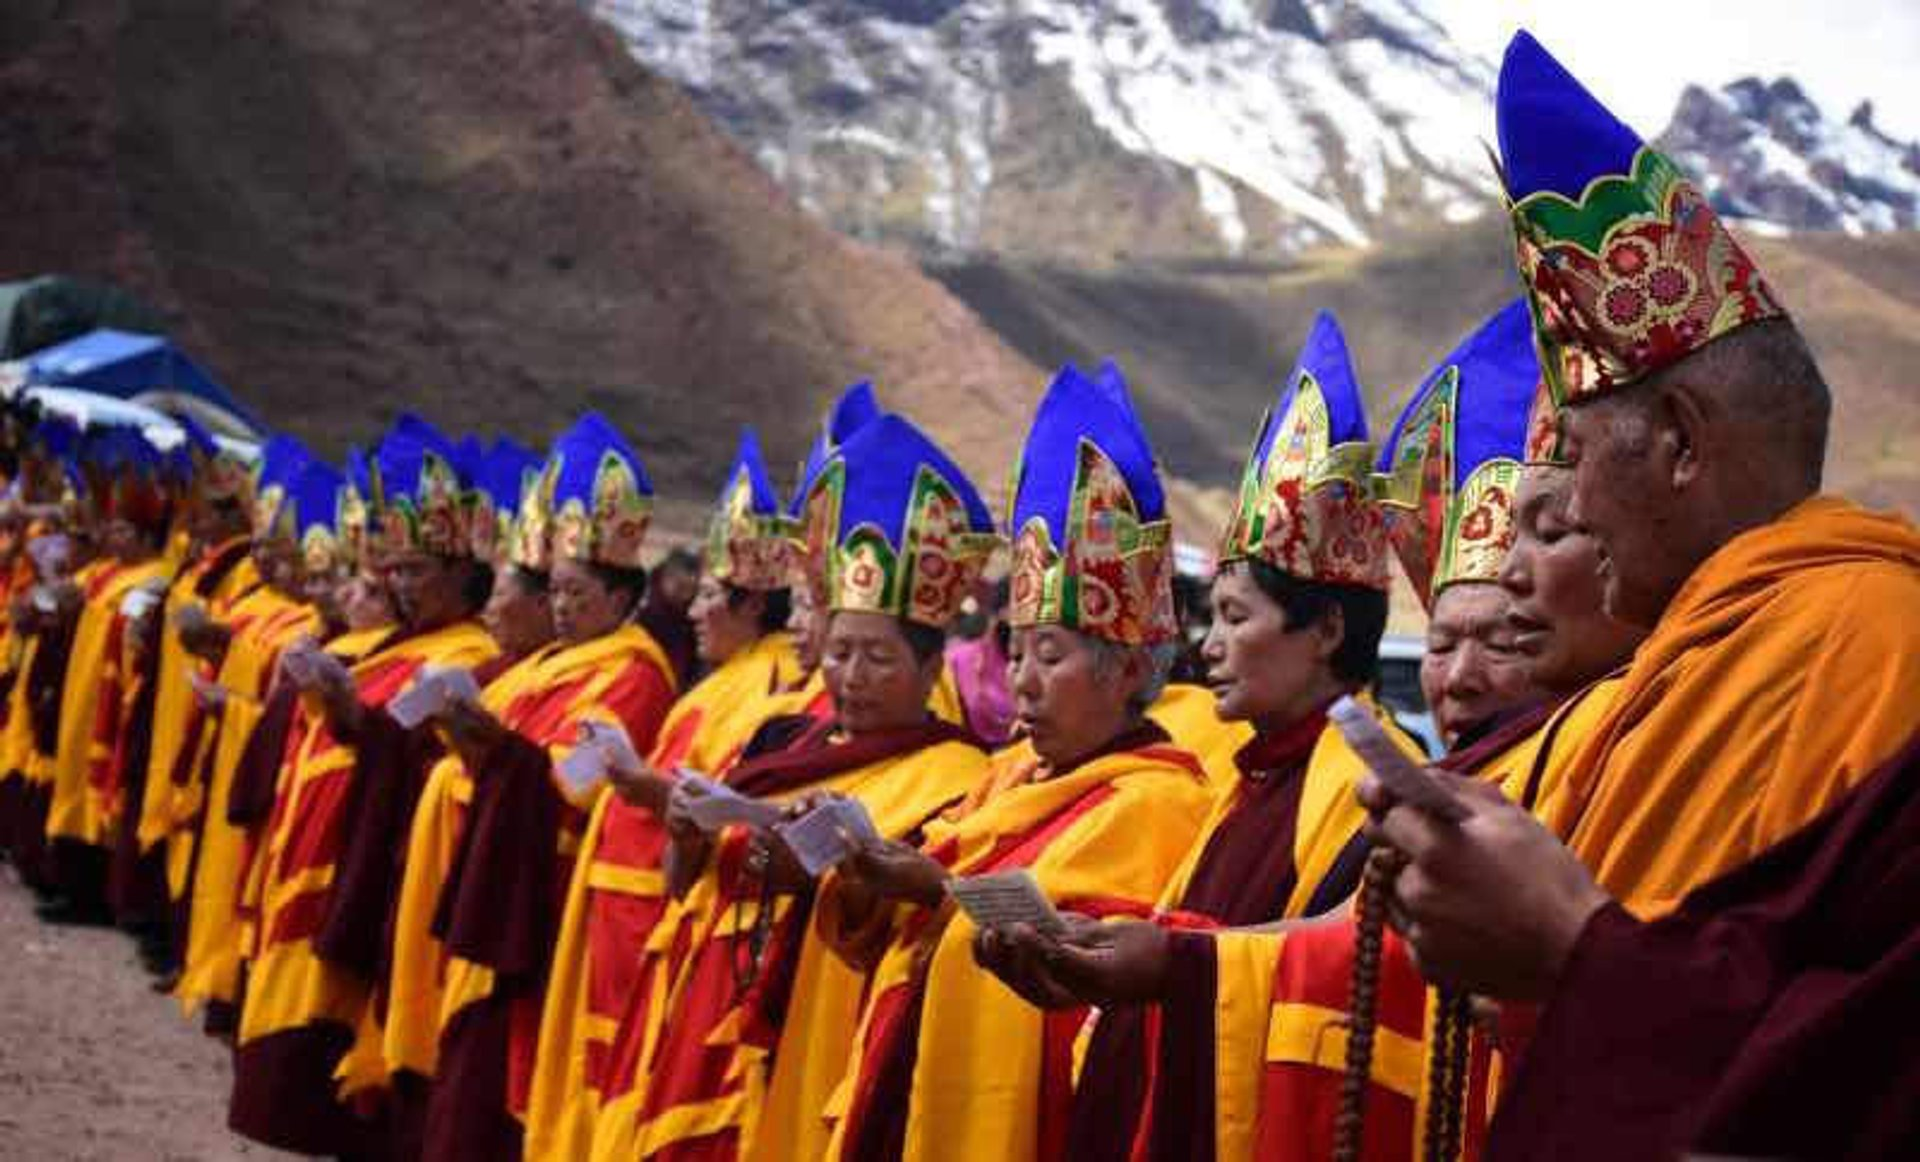 Great Prayer Festival (Monlam) in Tibet 2020 - Best Time